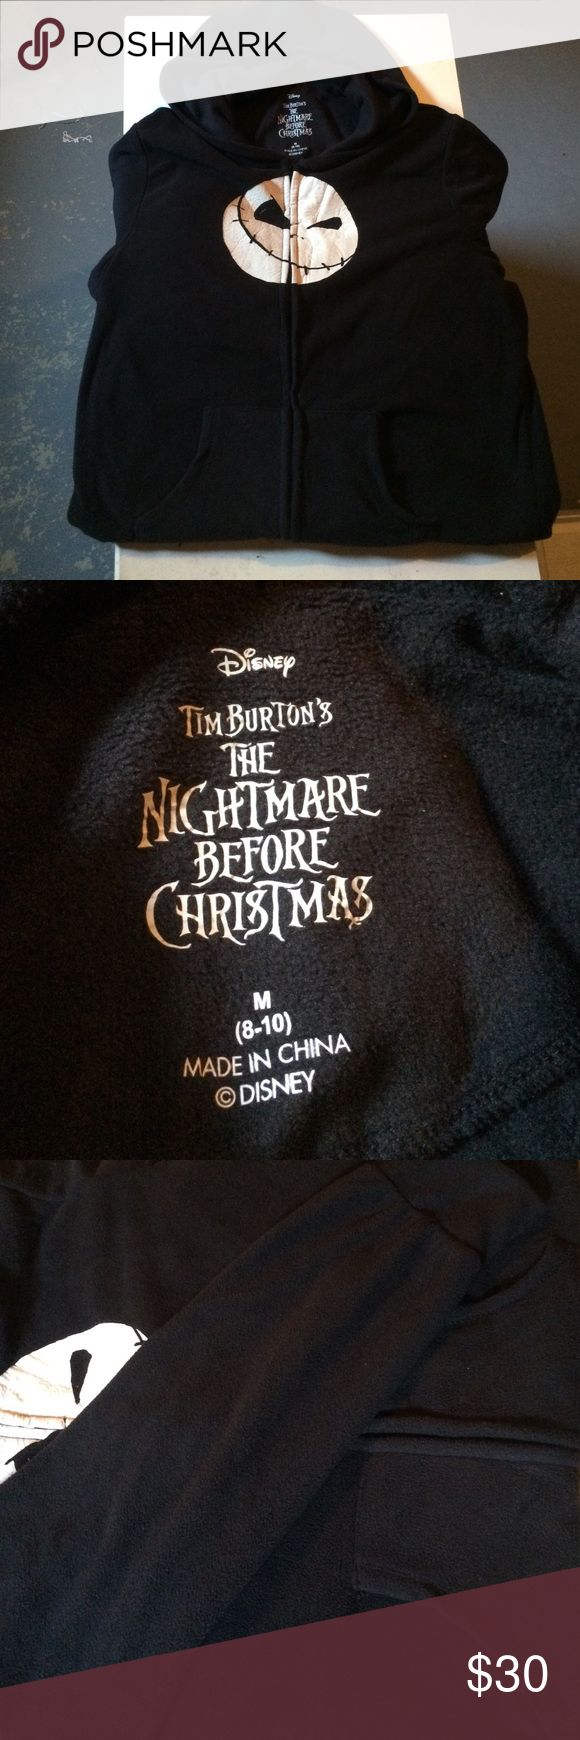 Nightmare Before Christmas Footie Pajamas Authentic Disney : Tim Burton footie pajamas. Black with glow in the dark jack skullington design. Working zipper. Attached footie slippers with grip bottoms and hoodie as well. Long sleeve. Has functional pockets. Extremely comfortable material. Worn once for a pajama party. Size medium.Condition 1-10: 10 . Disney Intimates & Sleepwear Pajamas